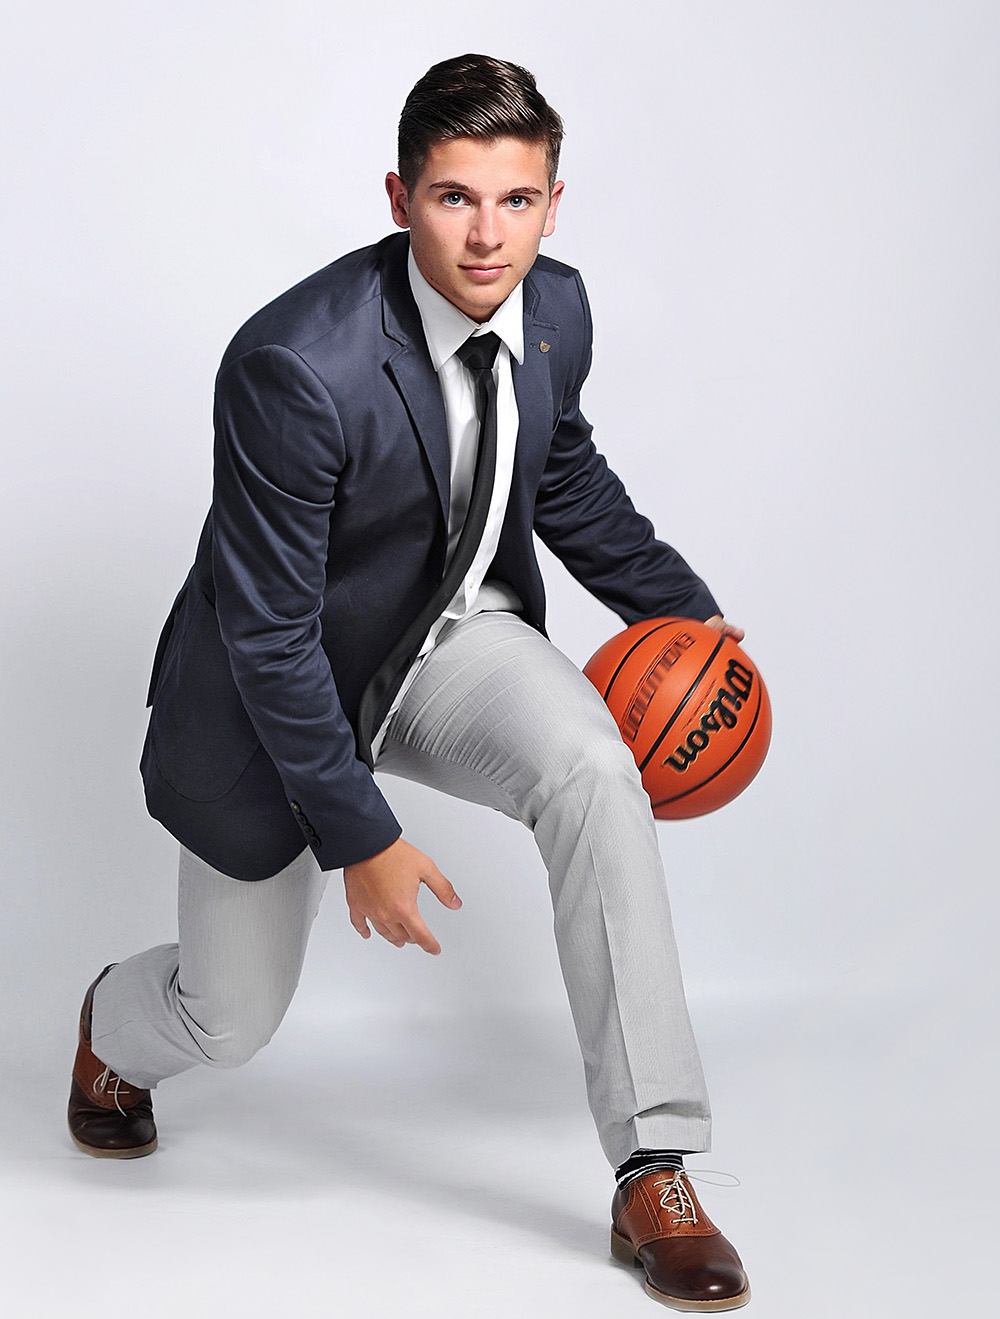 Studio B Portraits_ Senior Boy in suit with basketball.jpg